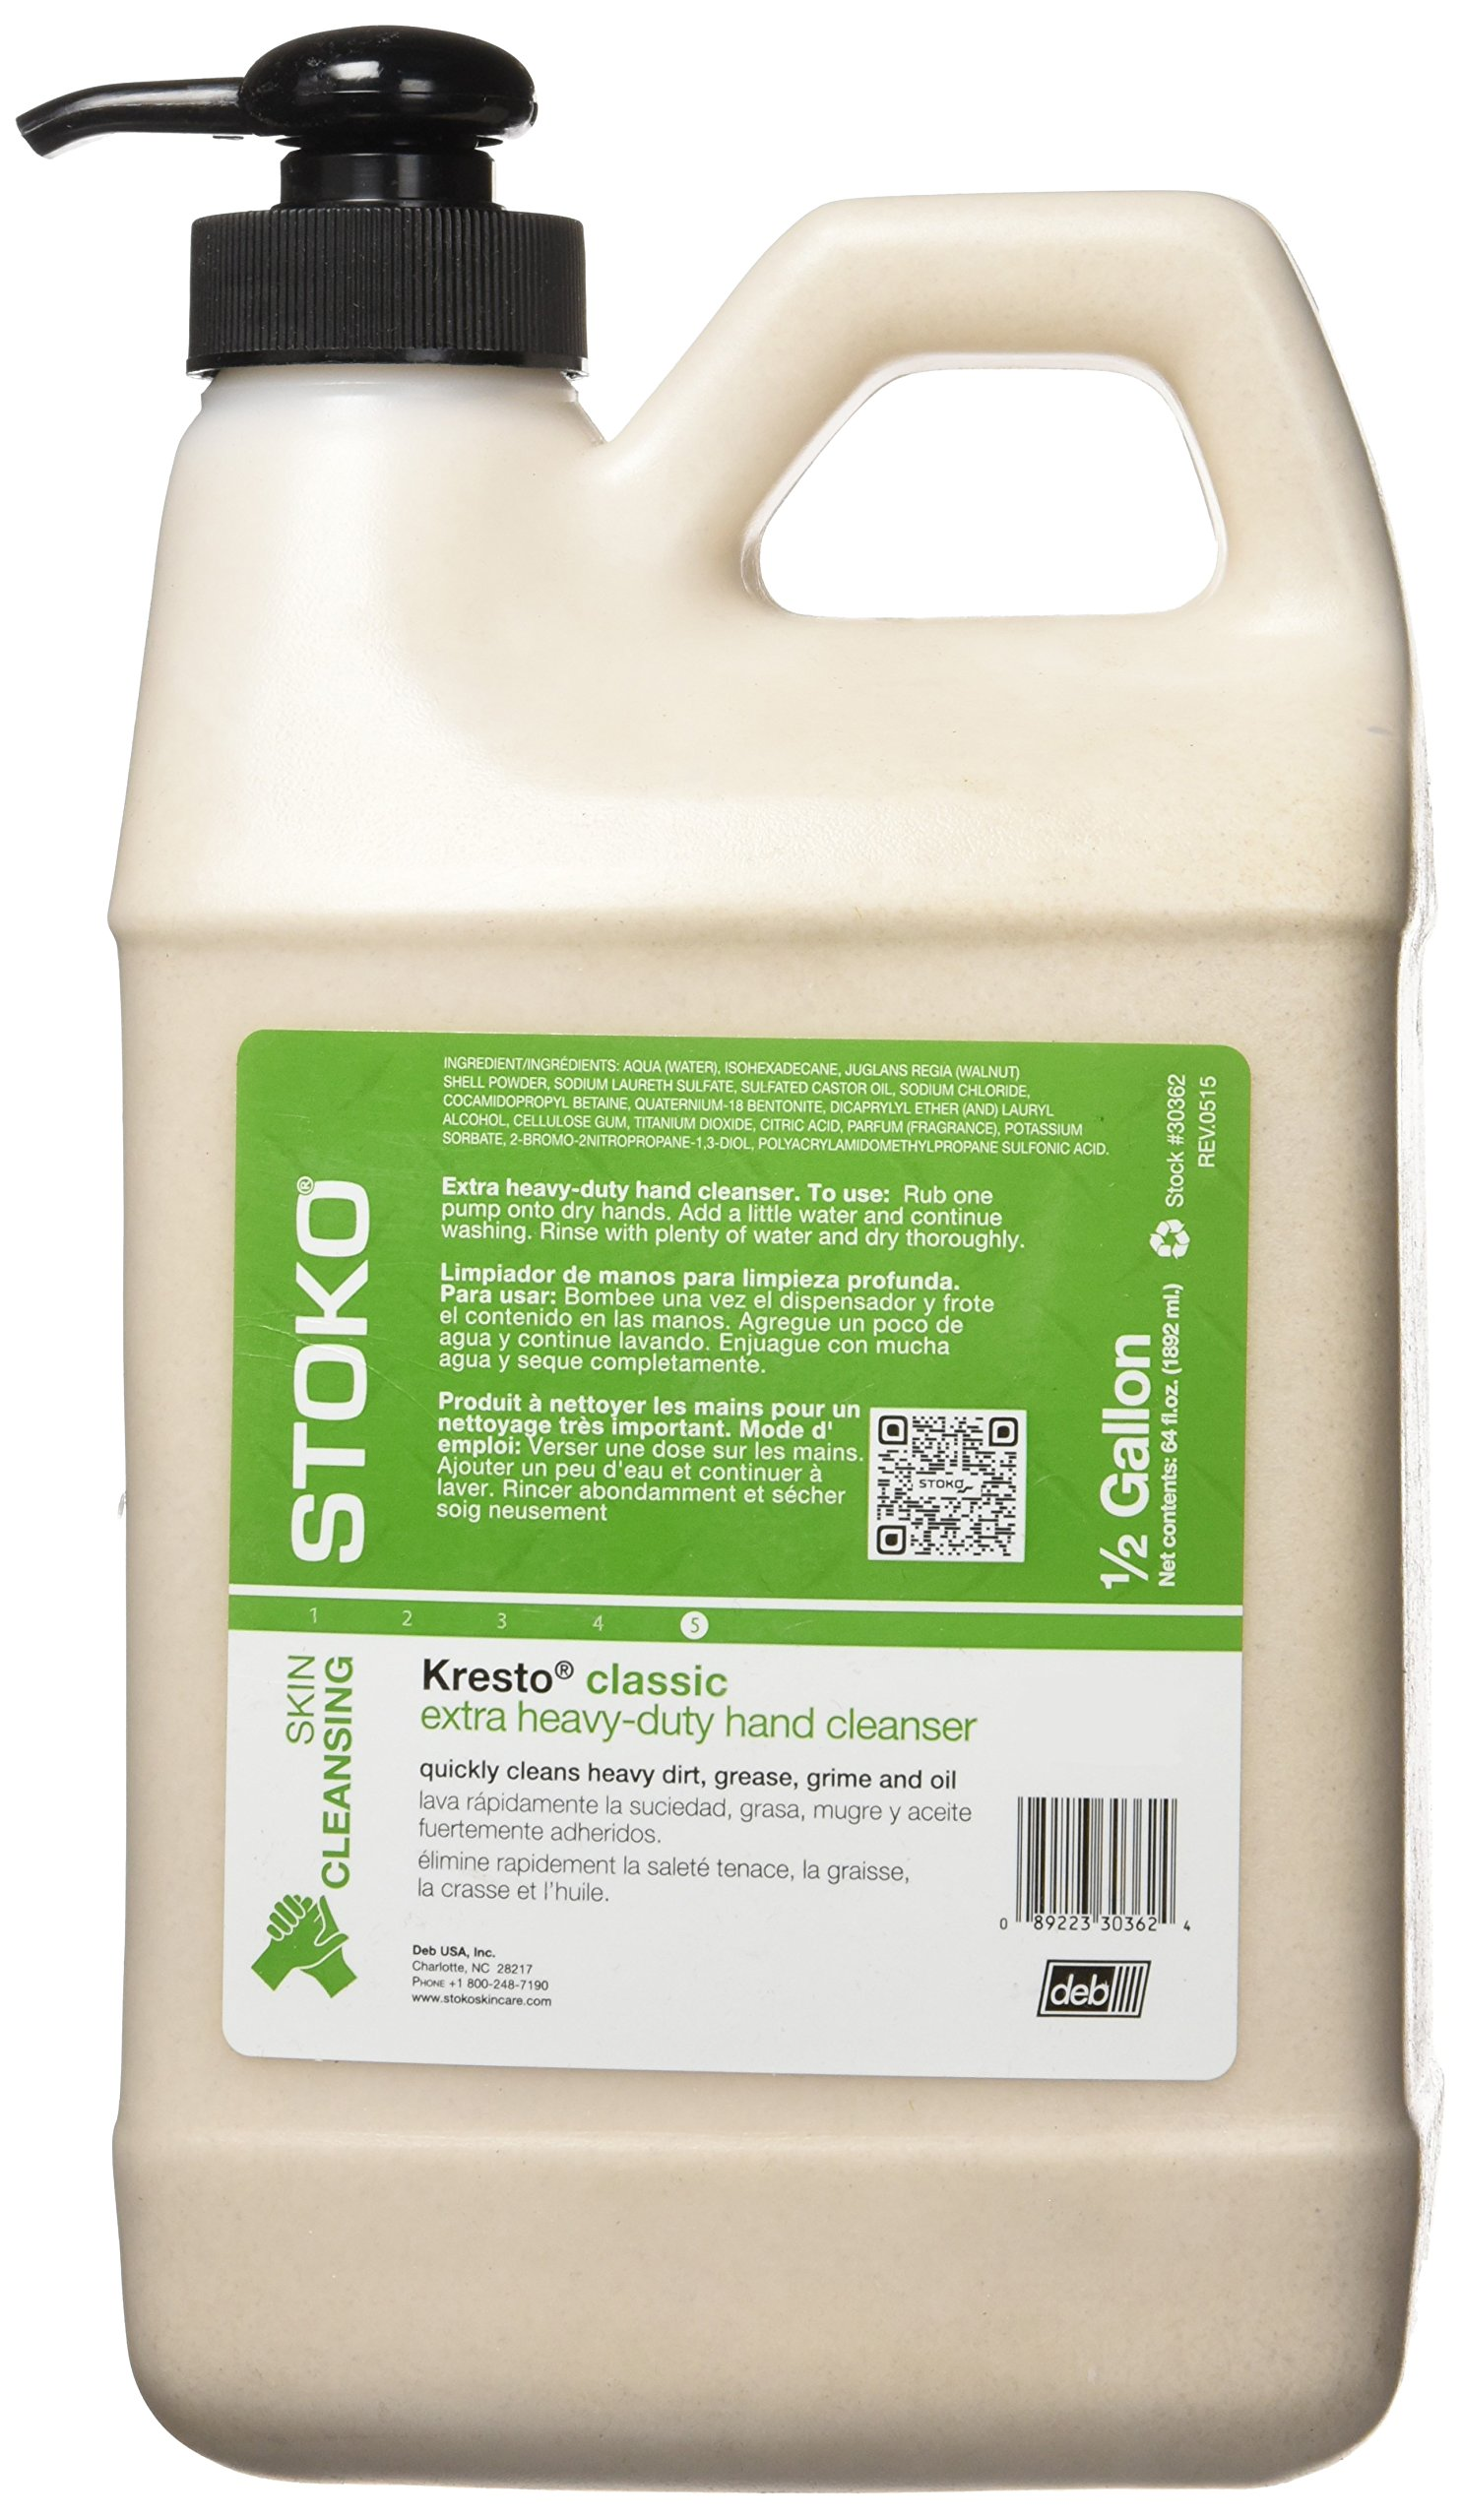 STOKO 30362 Hand Cleaner product image